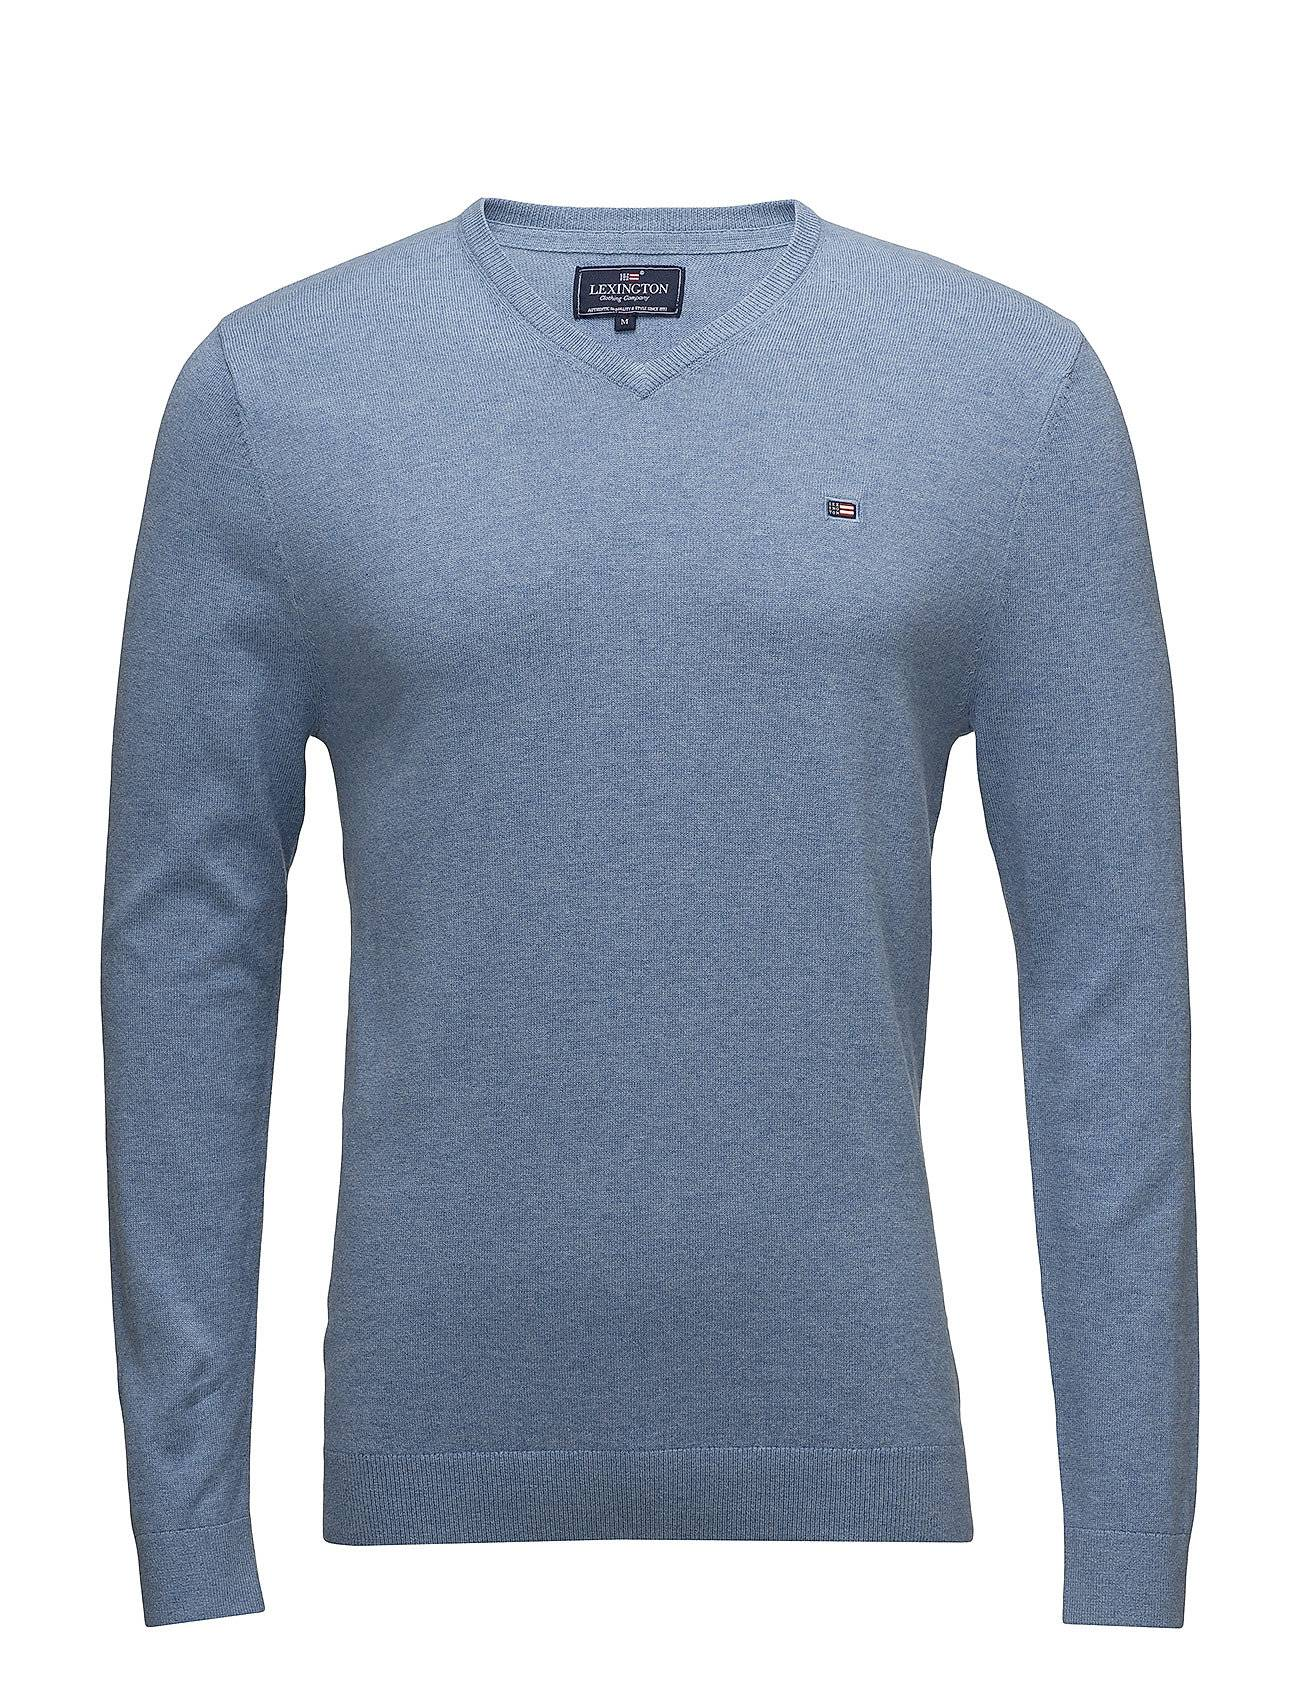 Lexington Clothing Nicholas V-Neck Sweater